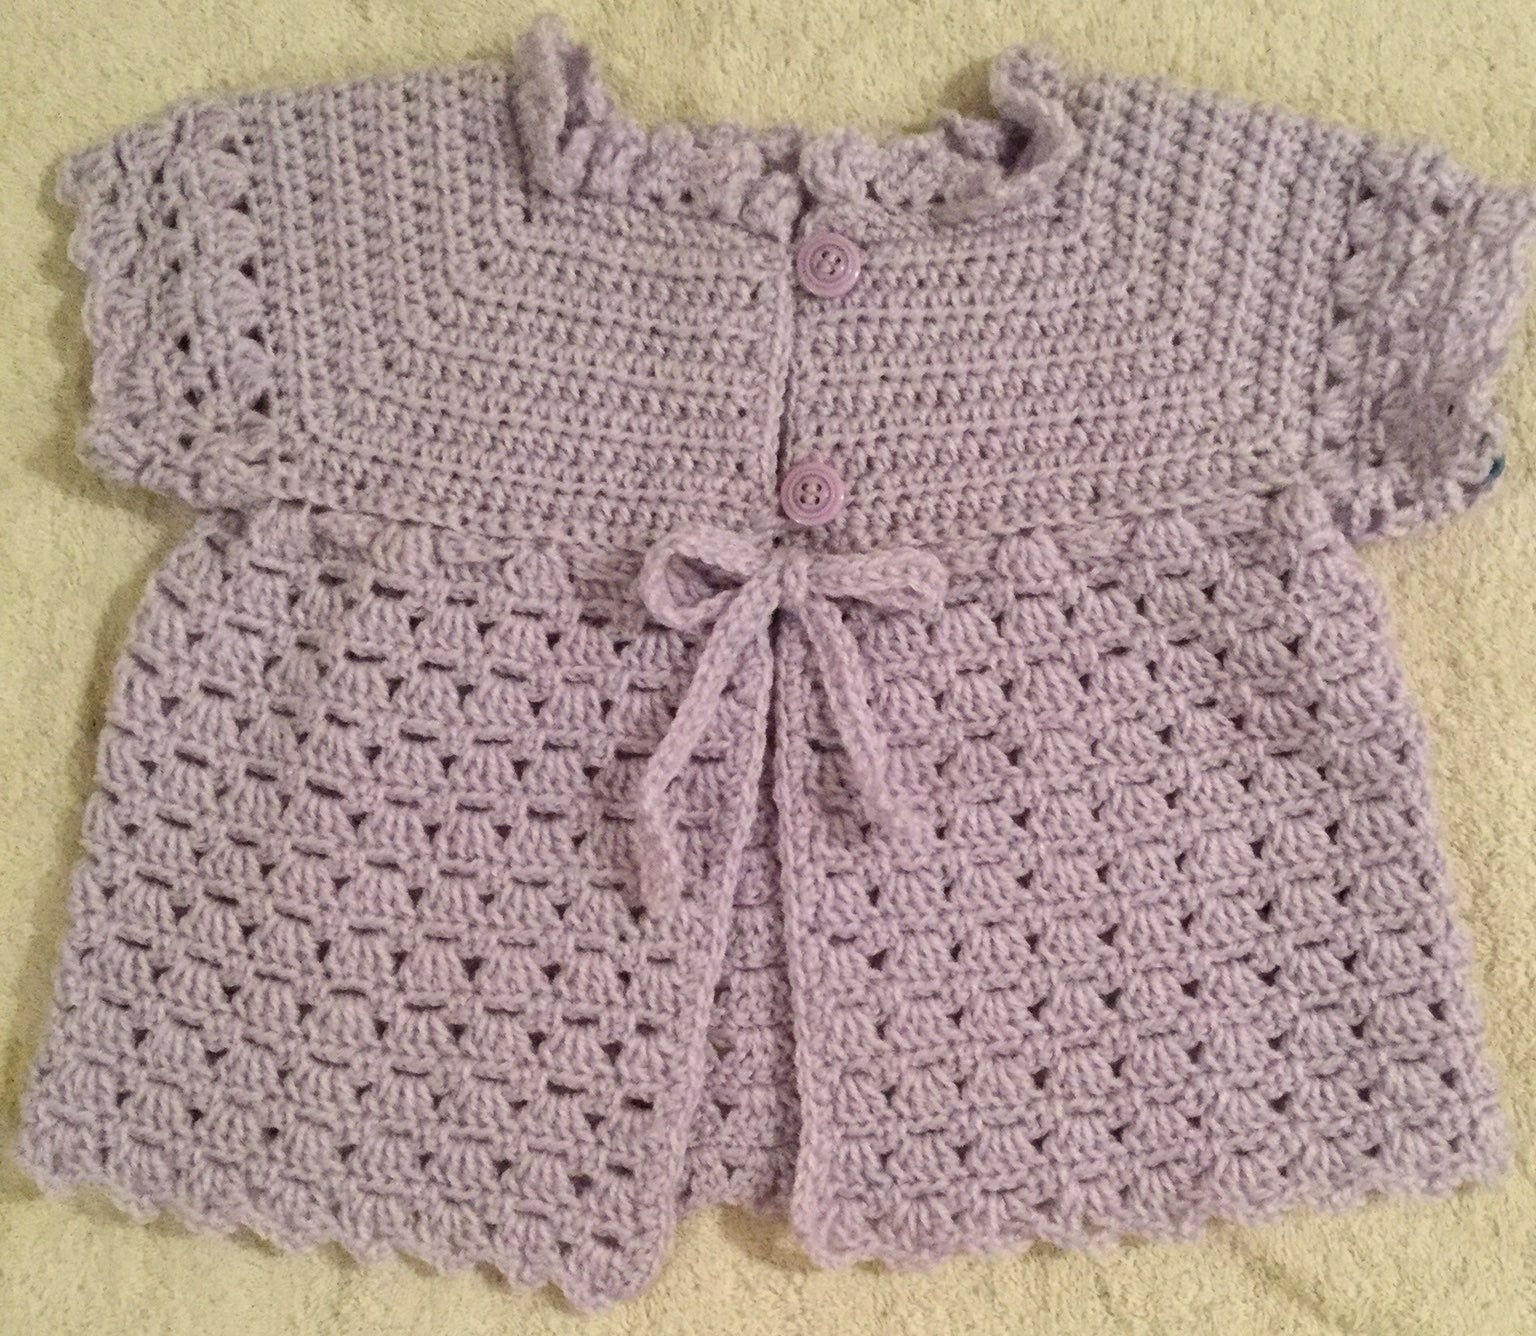 Crocheted baby jacket, 12 months